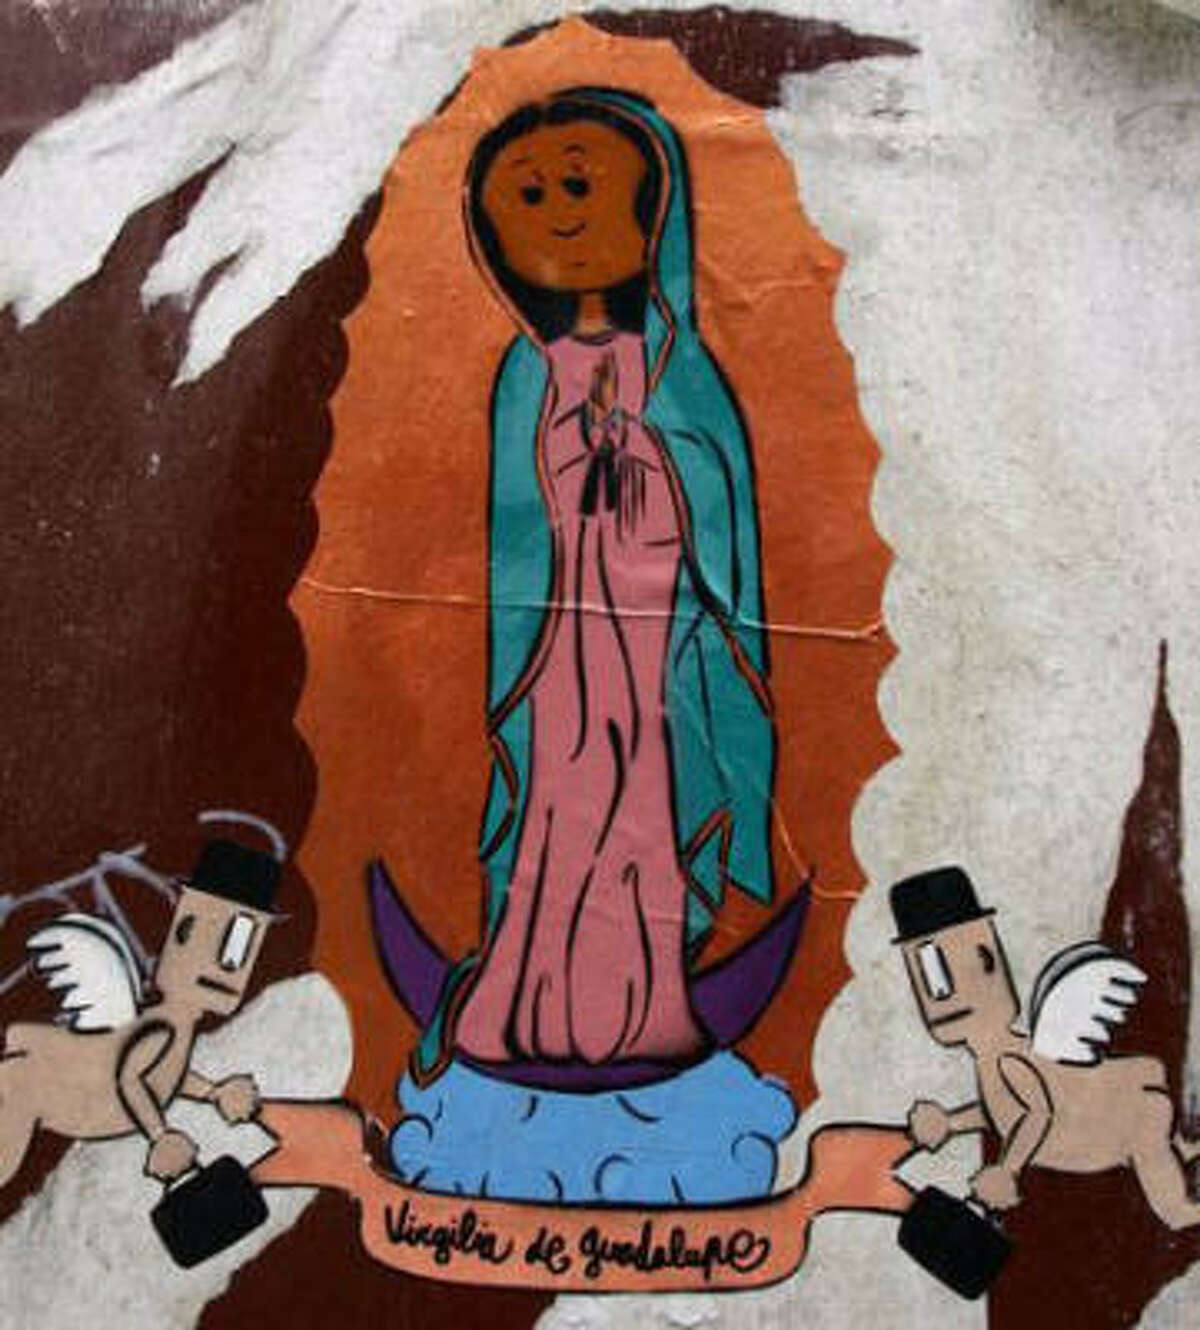 Our Lady of Guadalupe, seen here as graffiti, is popular among Catholics, Hispanics and young American hipsters.